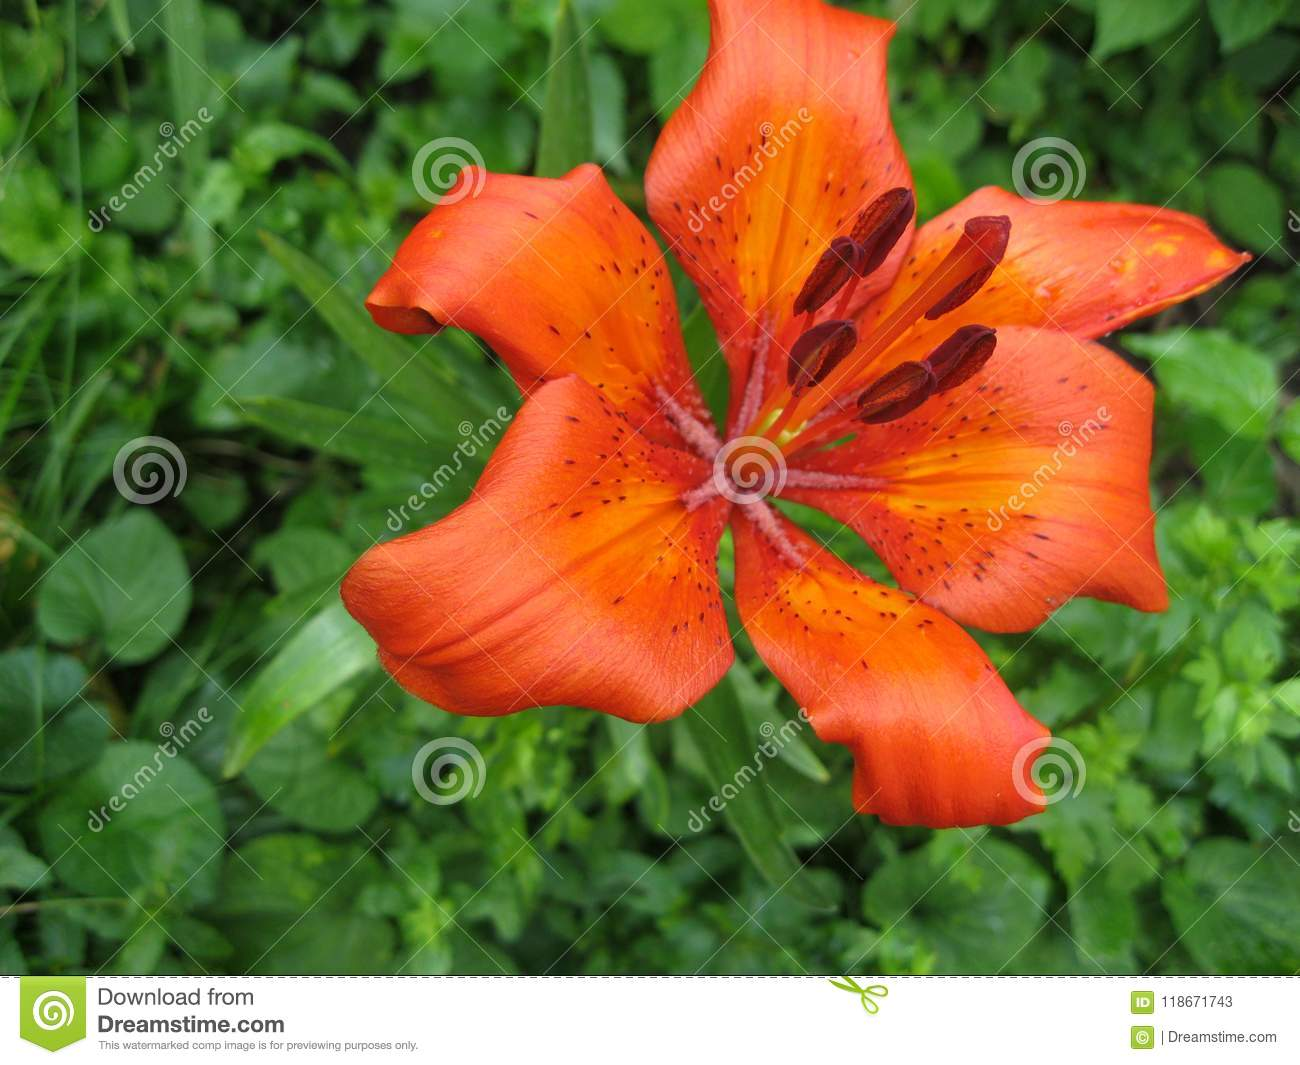 Lilium bulbiferum orange lily fire lily and tiger lily stock download lilium bulbiferum orange lily fire lily and tiger lily stock image image izmirmasajfo